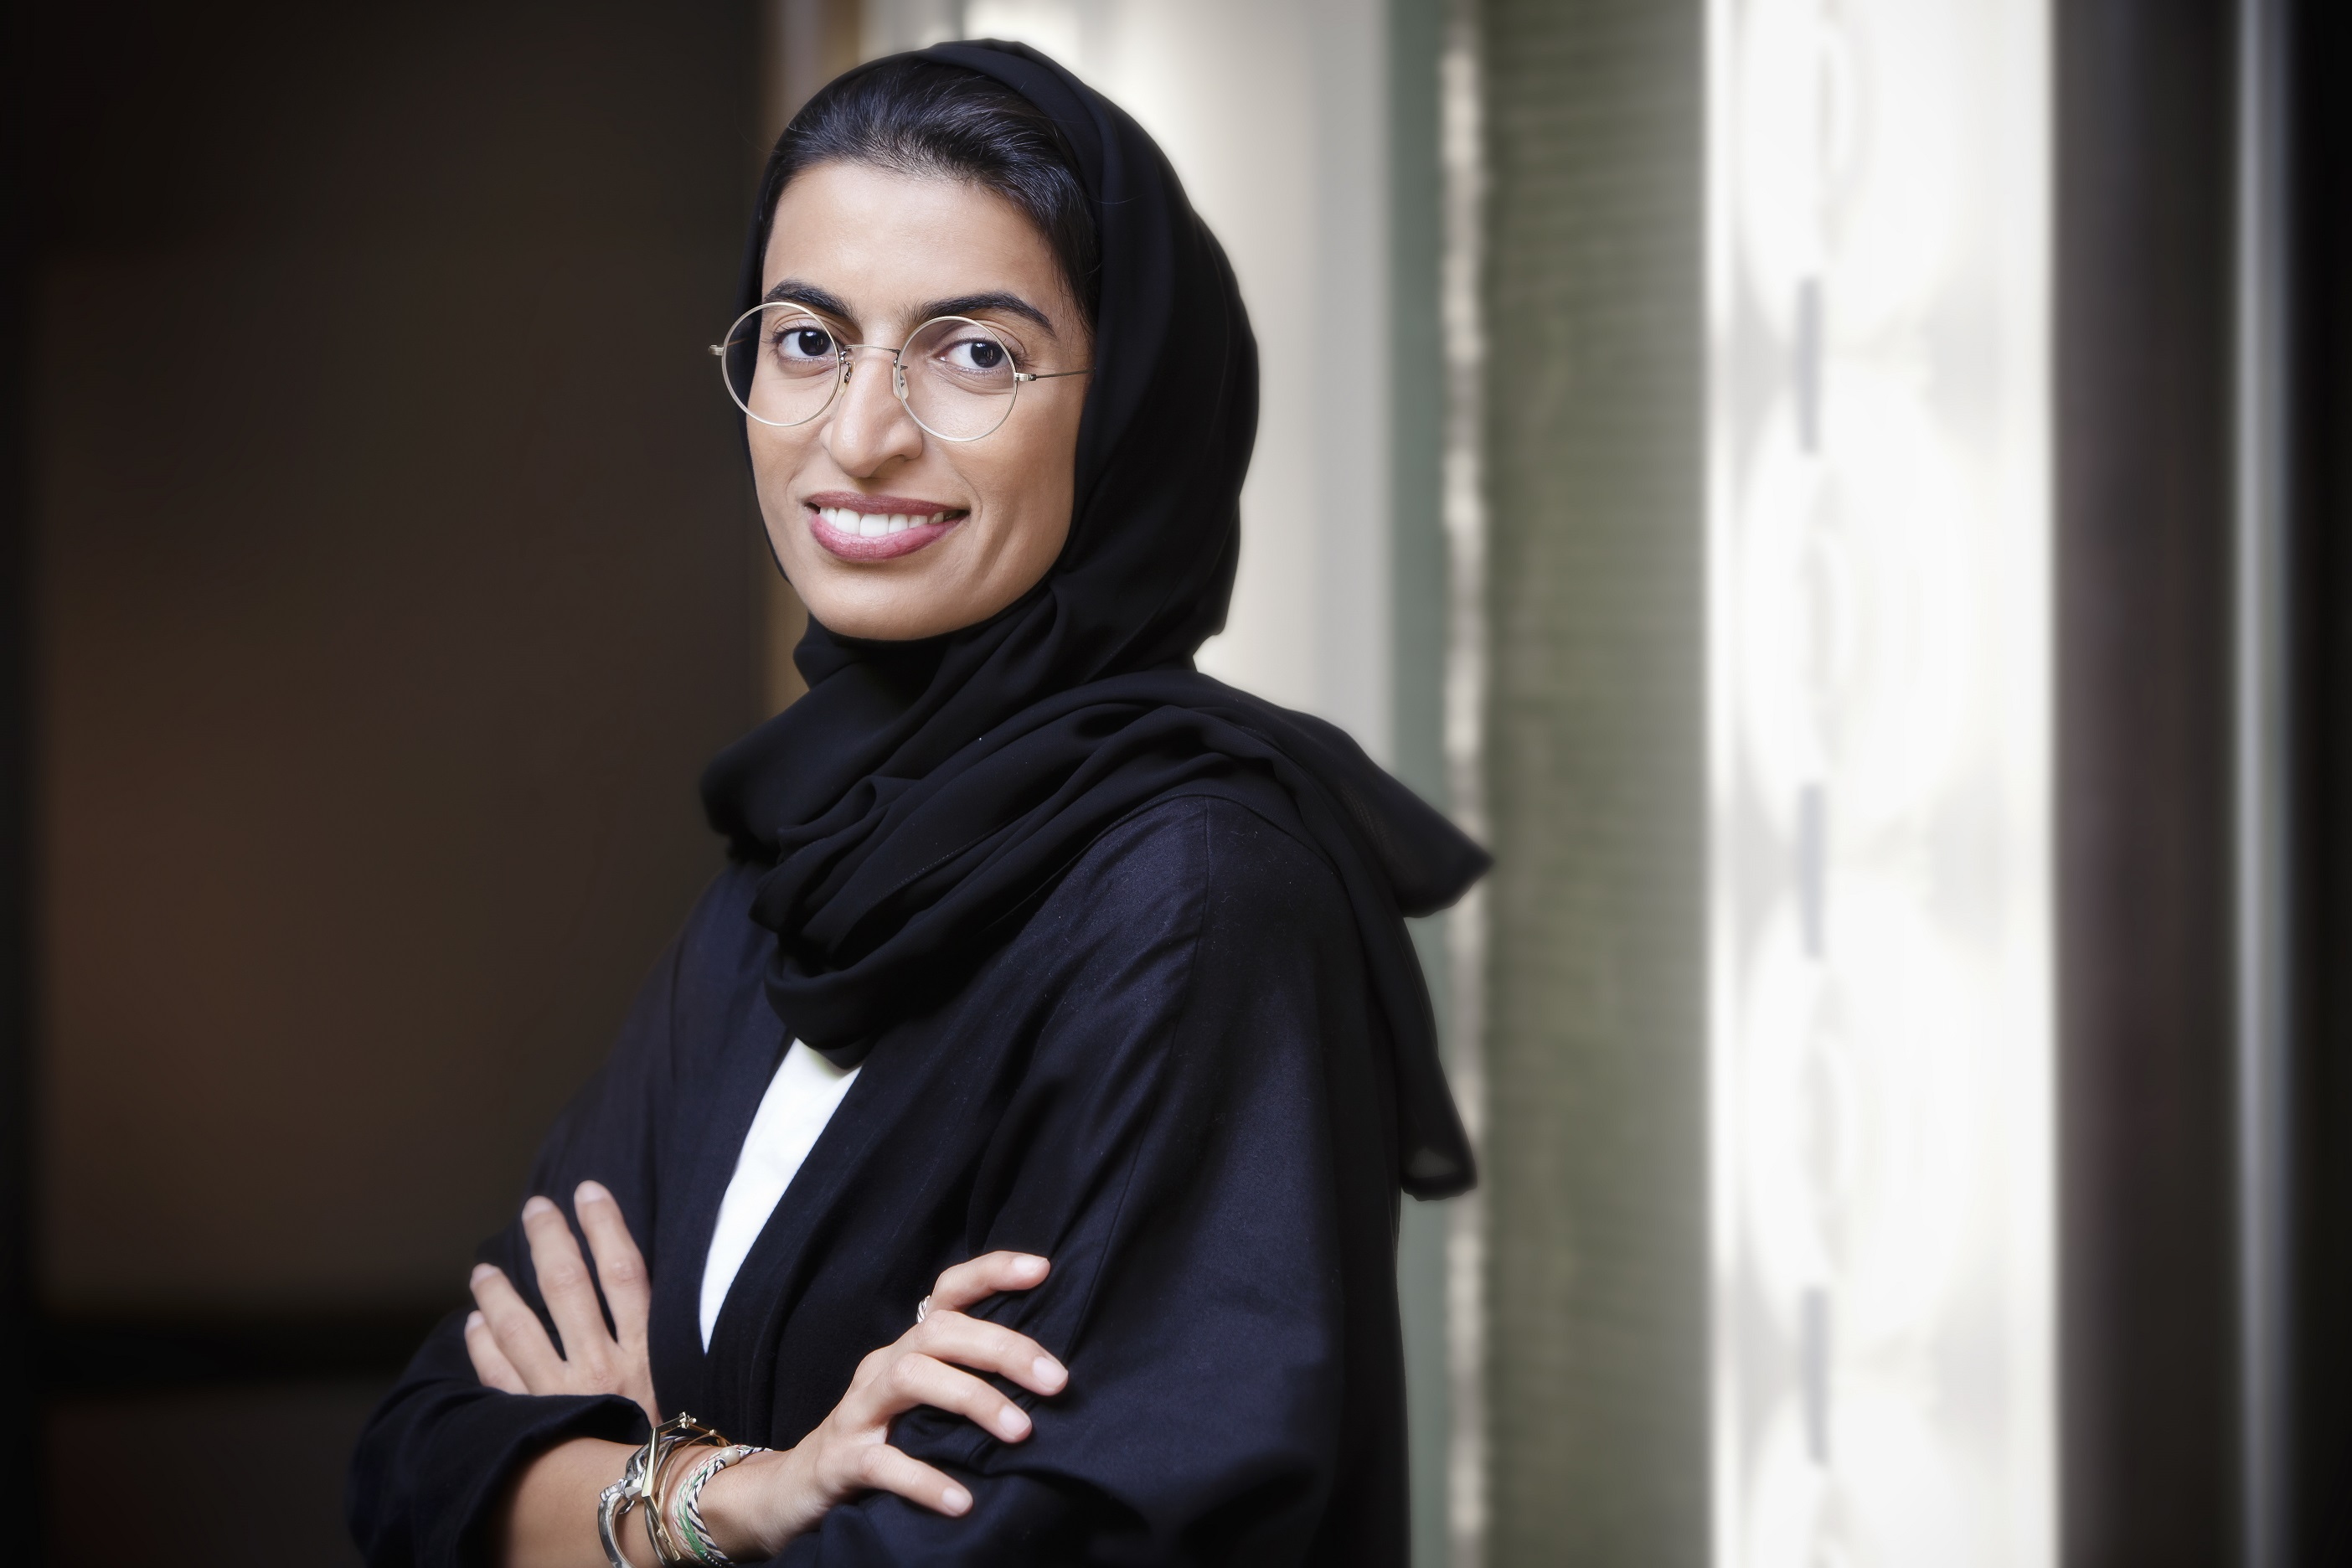 UAE Minister Noura Al Kaabi On Redefining The Country's Identity On The Global Stage